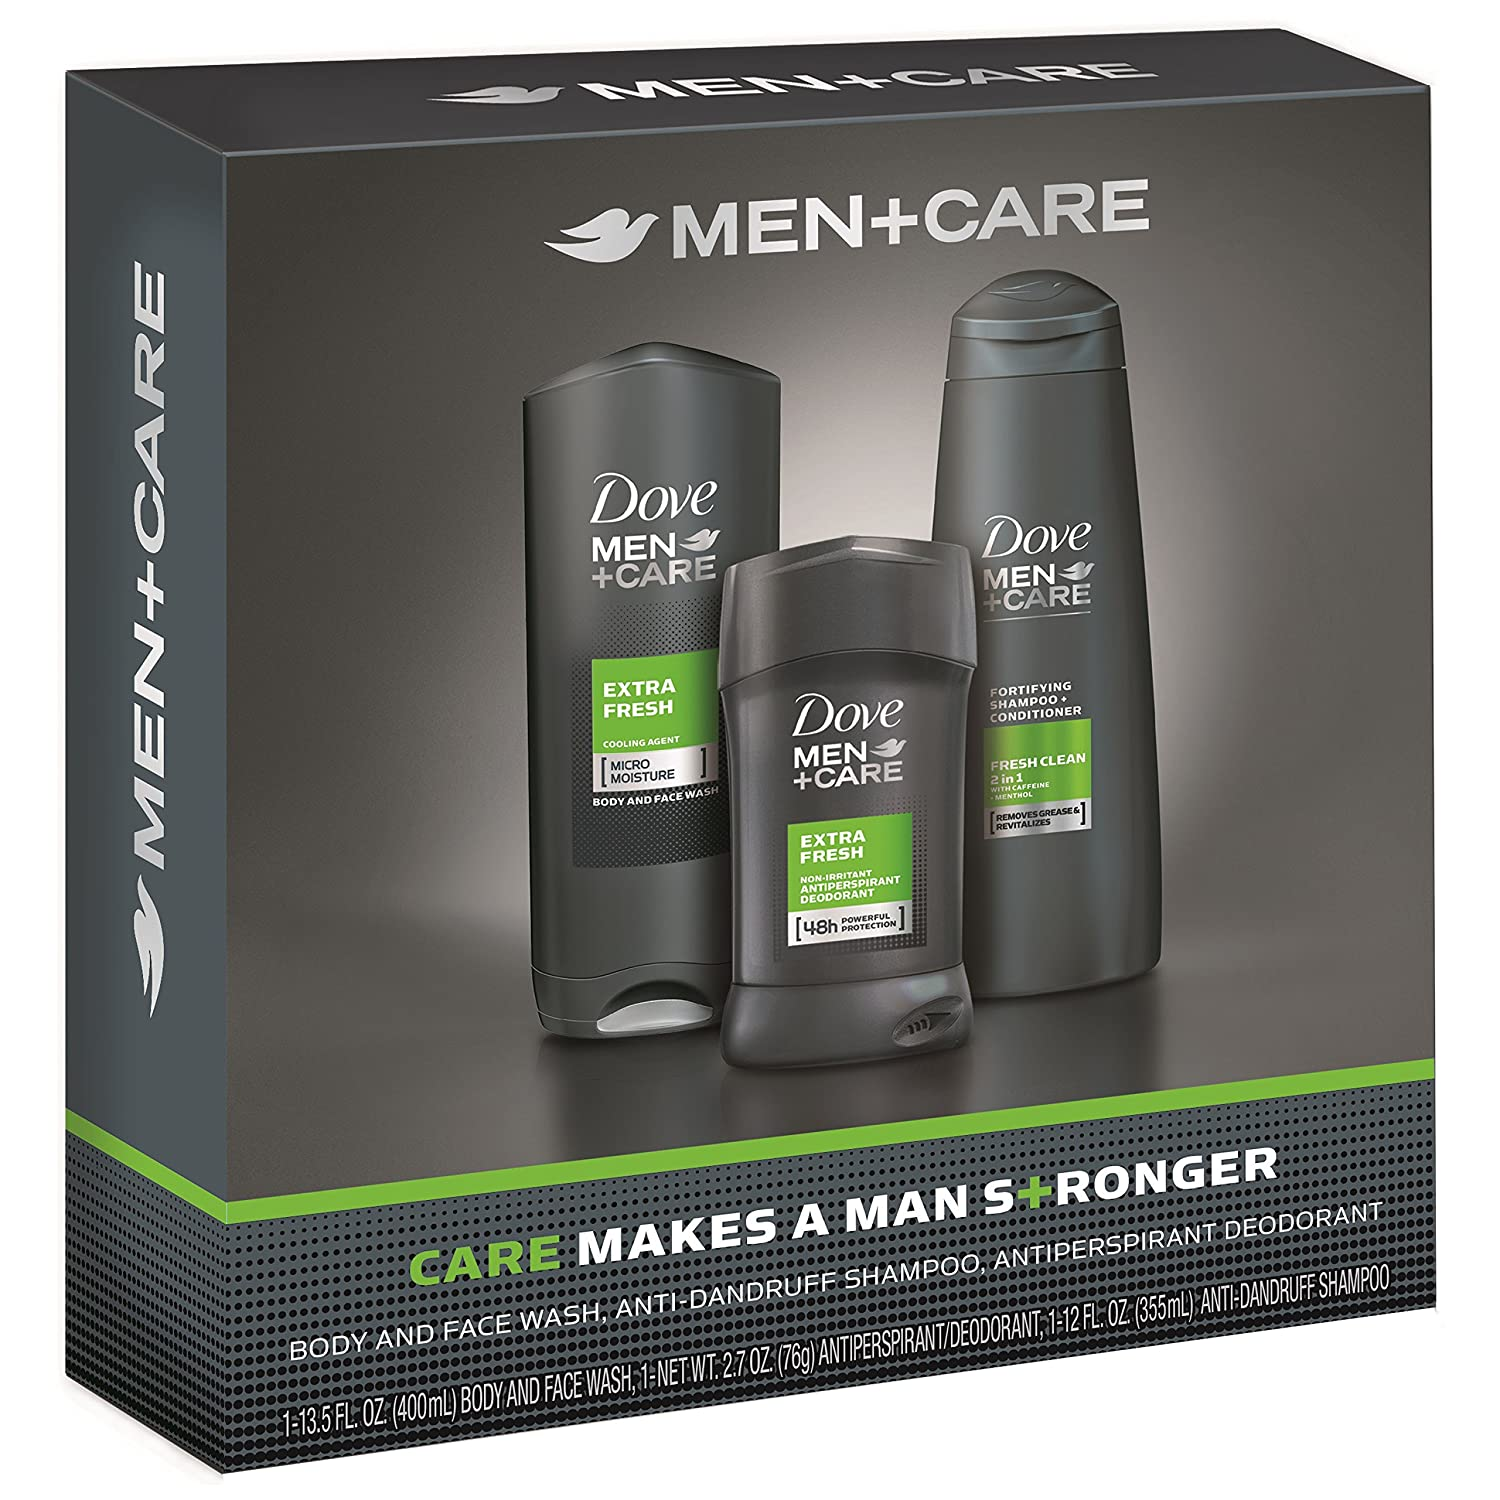 Dove Men+Care Hygiene Kit, Extra Fresh 3 ct Unilever 10079400394993